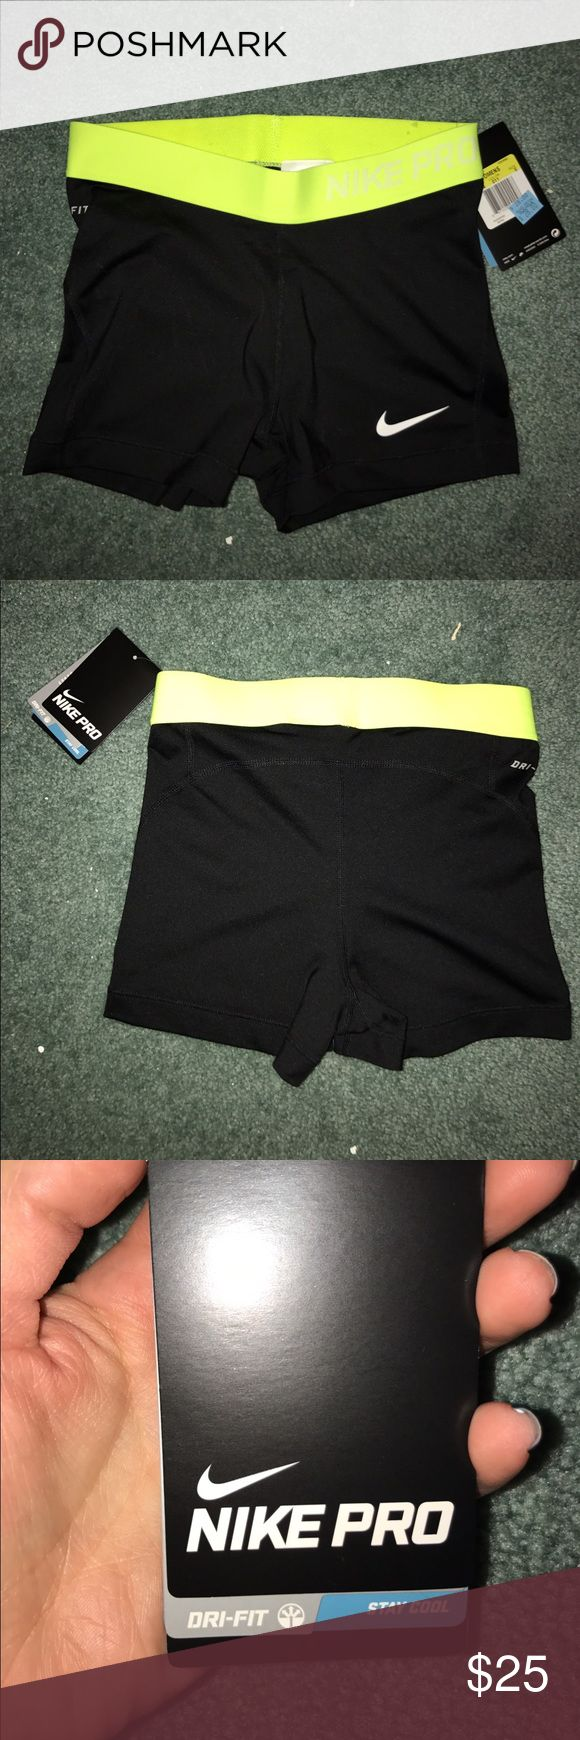 Nike pro spandex shorts Nike pro spandex shorts with neon yellow waistband. Size small. Still has tags on it. Never worn. Nike Shorts